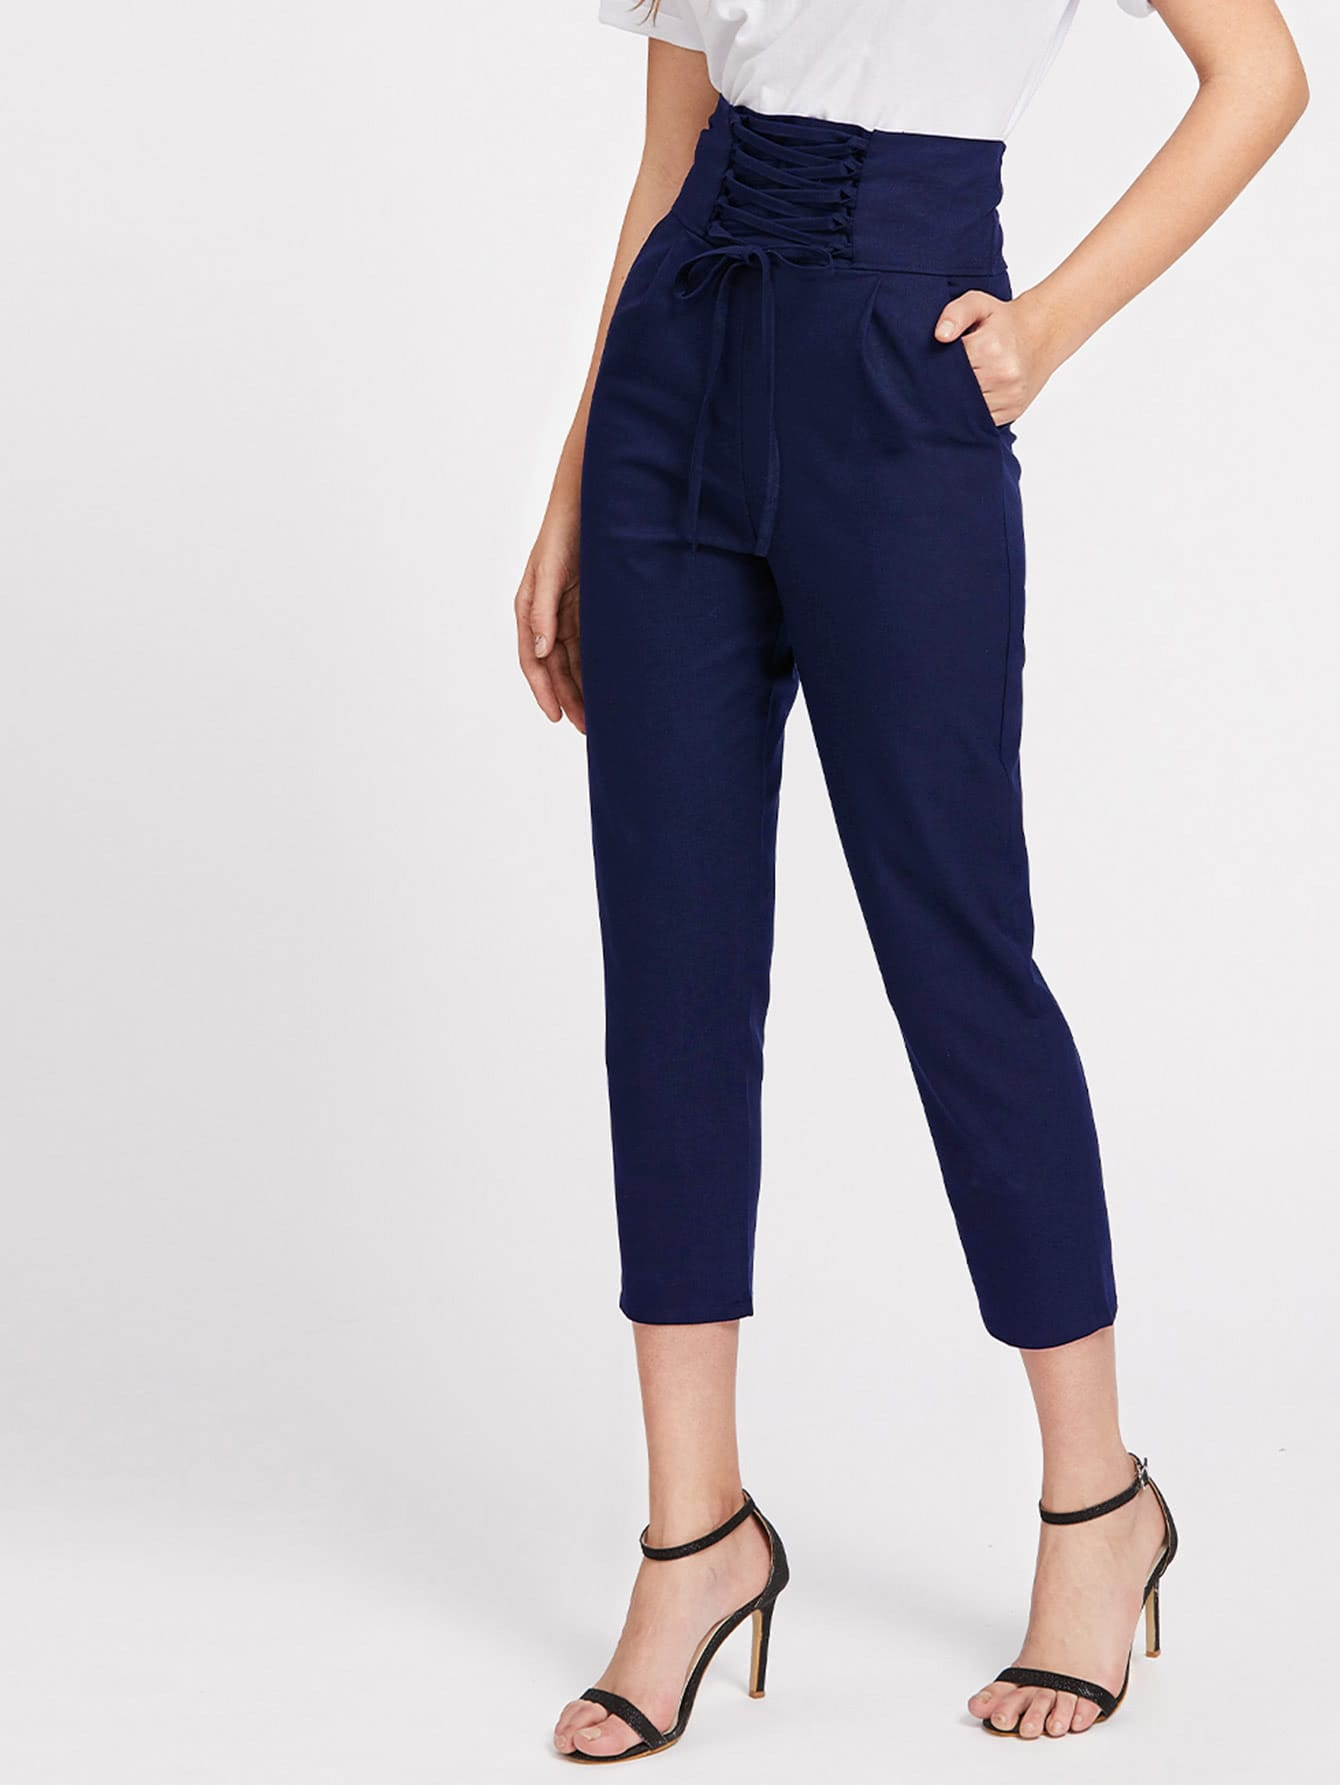 Lace Up Wide Waistband Tailored Pants